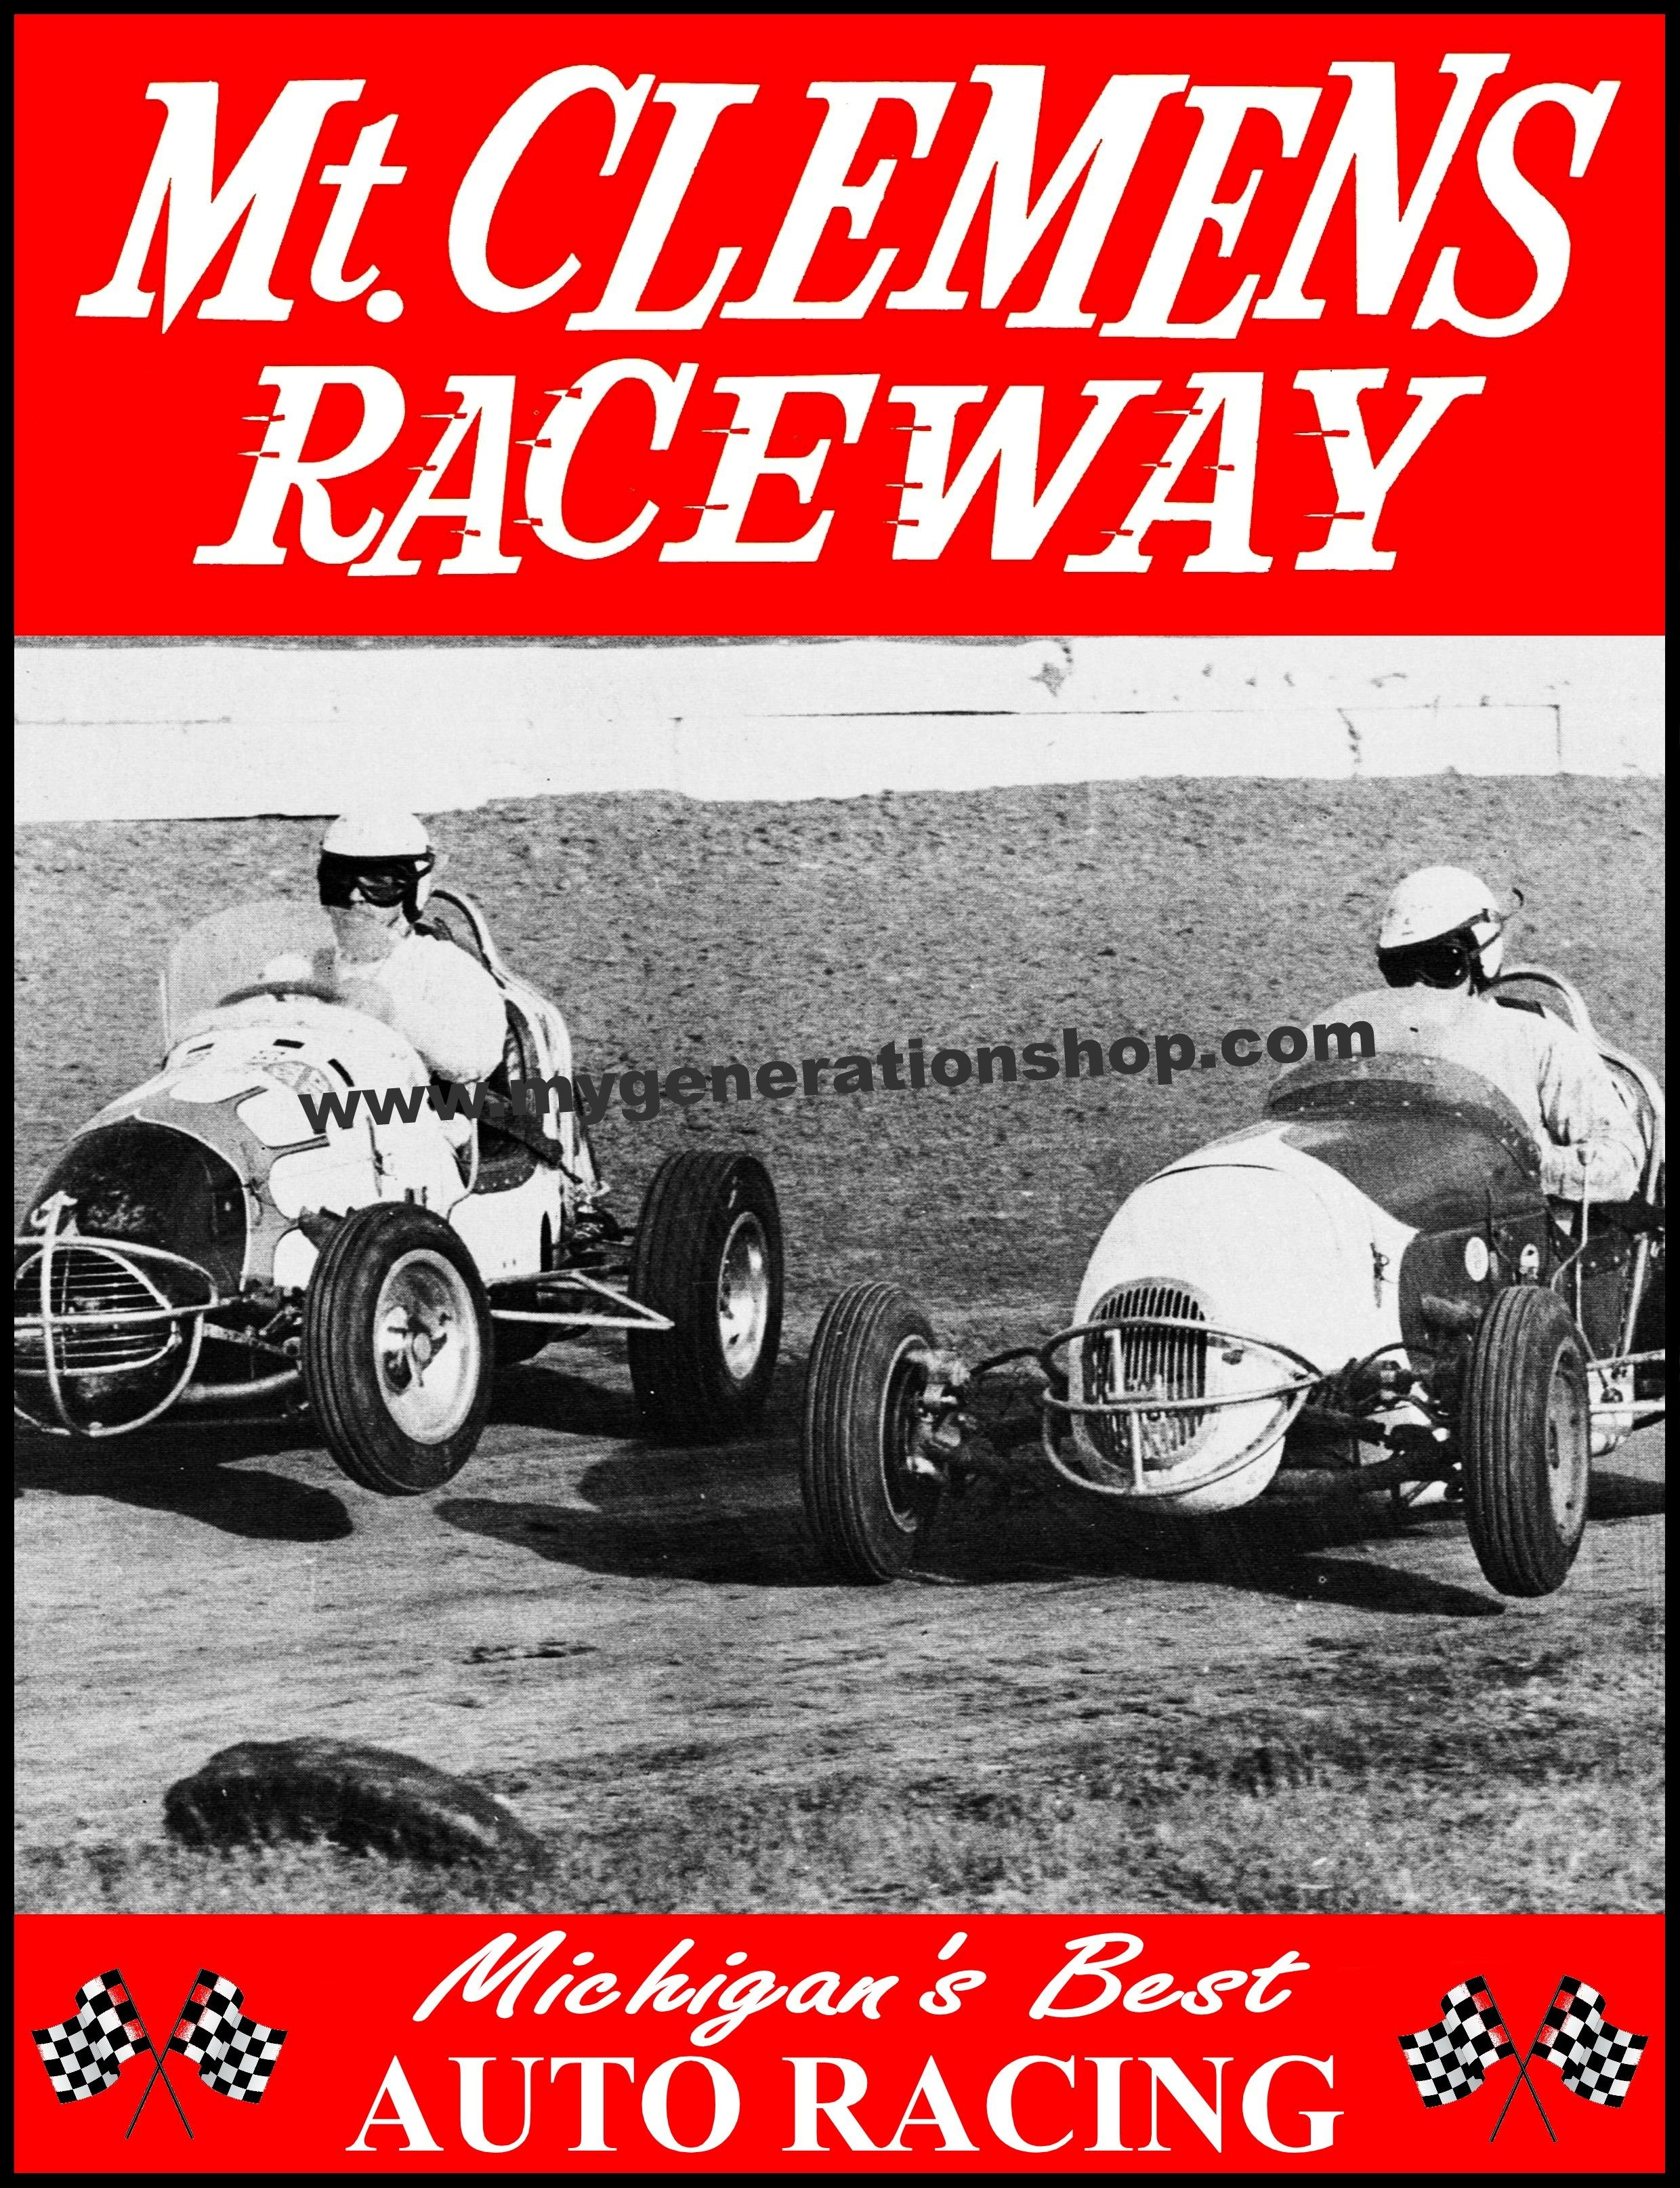 Little red wagon funny car pictures car canyon - Promotional Poster For Mt Clemens Raceway A Stock Car Track Once Located Near Mt